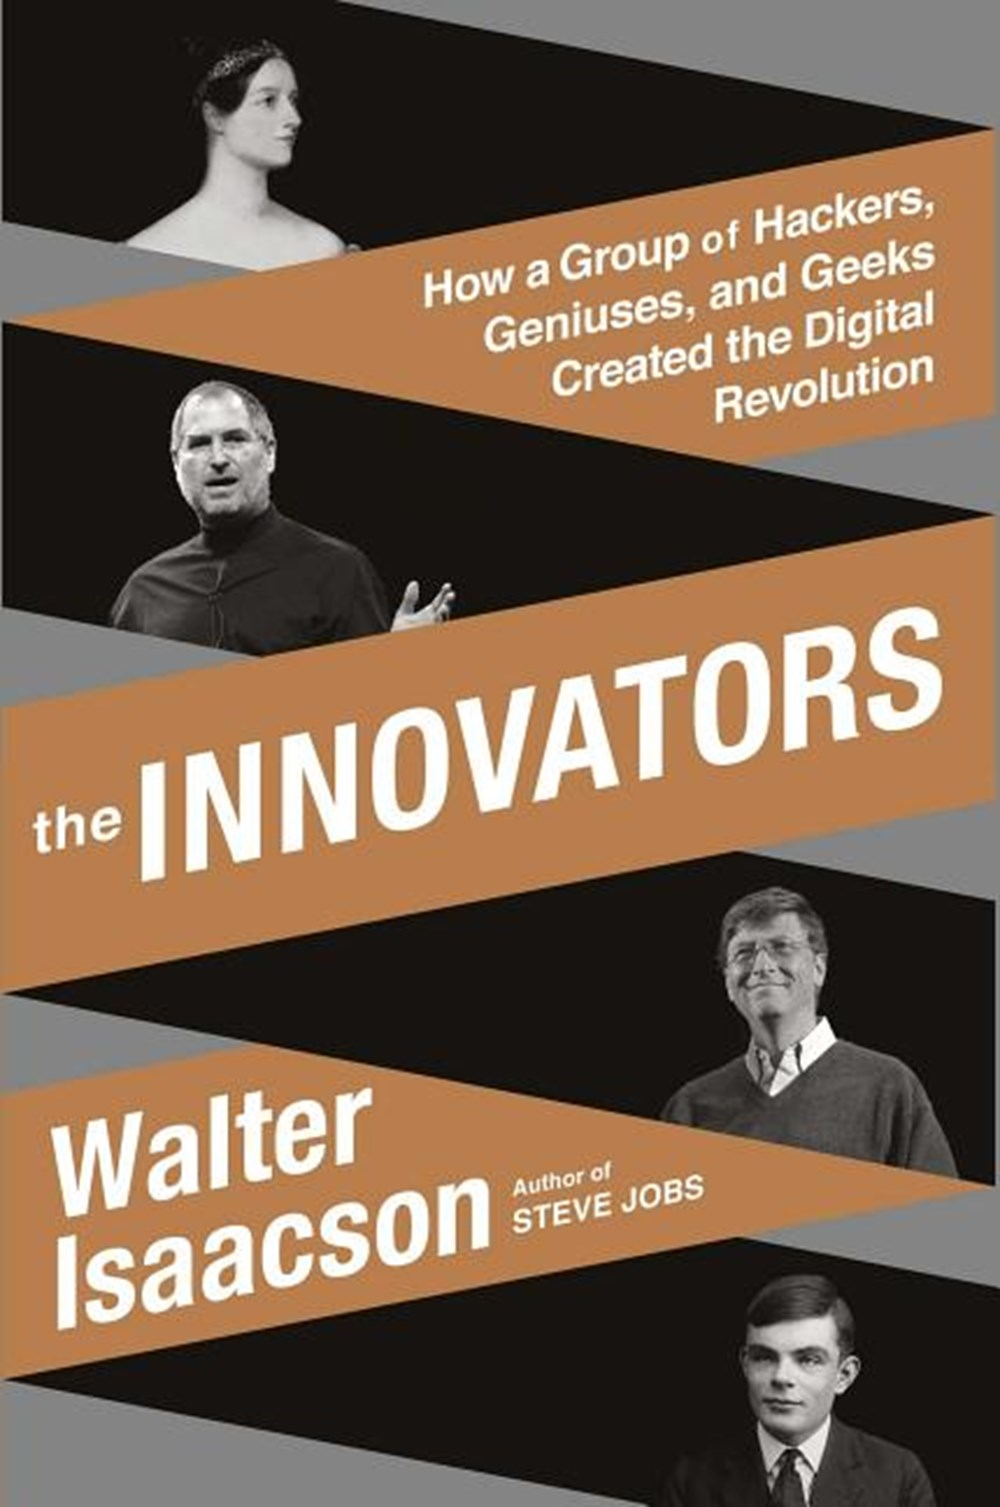 Innovators How a Group of Hackers, Geniuses, and Geeks Created the Digital Revolution